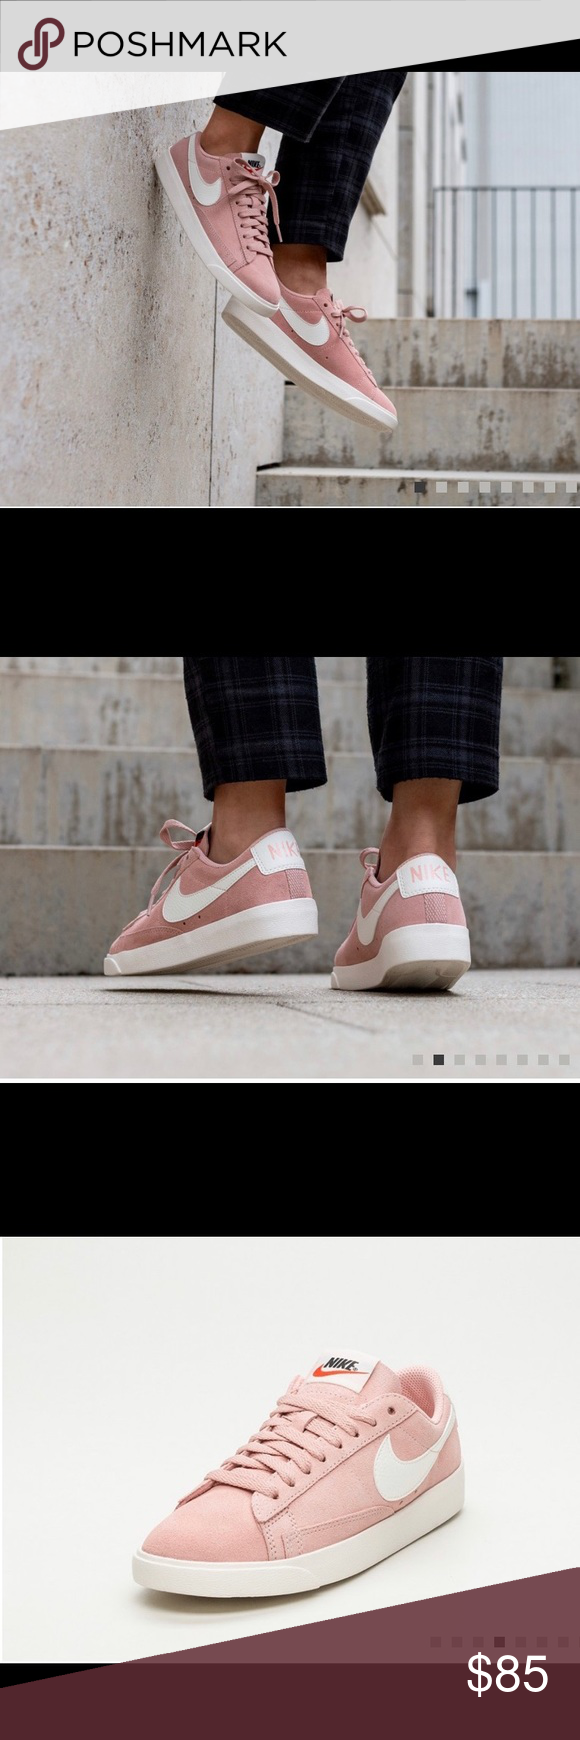 new style e6d6d 9f11f NIKE BLAZER LOW SNEAKERS Nike Wmns Blazer Low SD (Coral Stardust   Sail -  Sail